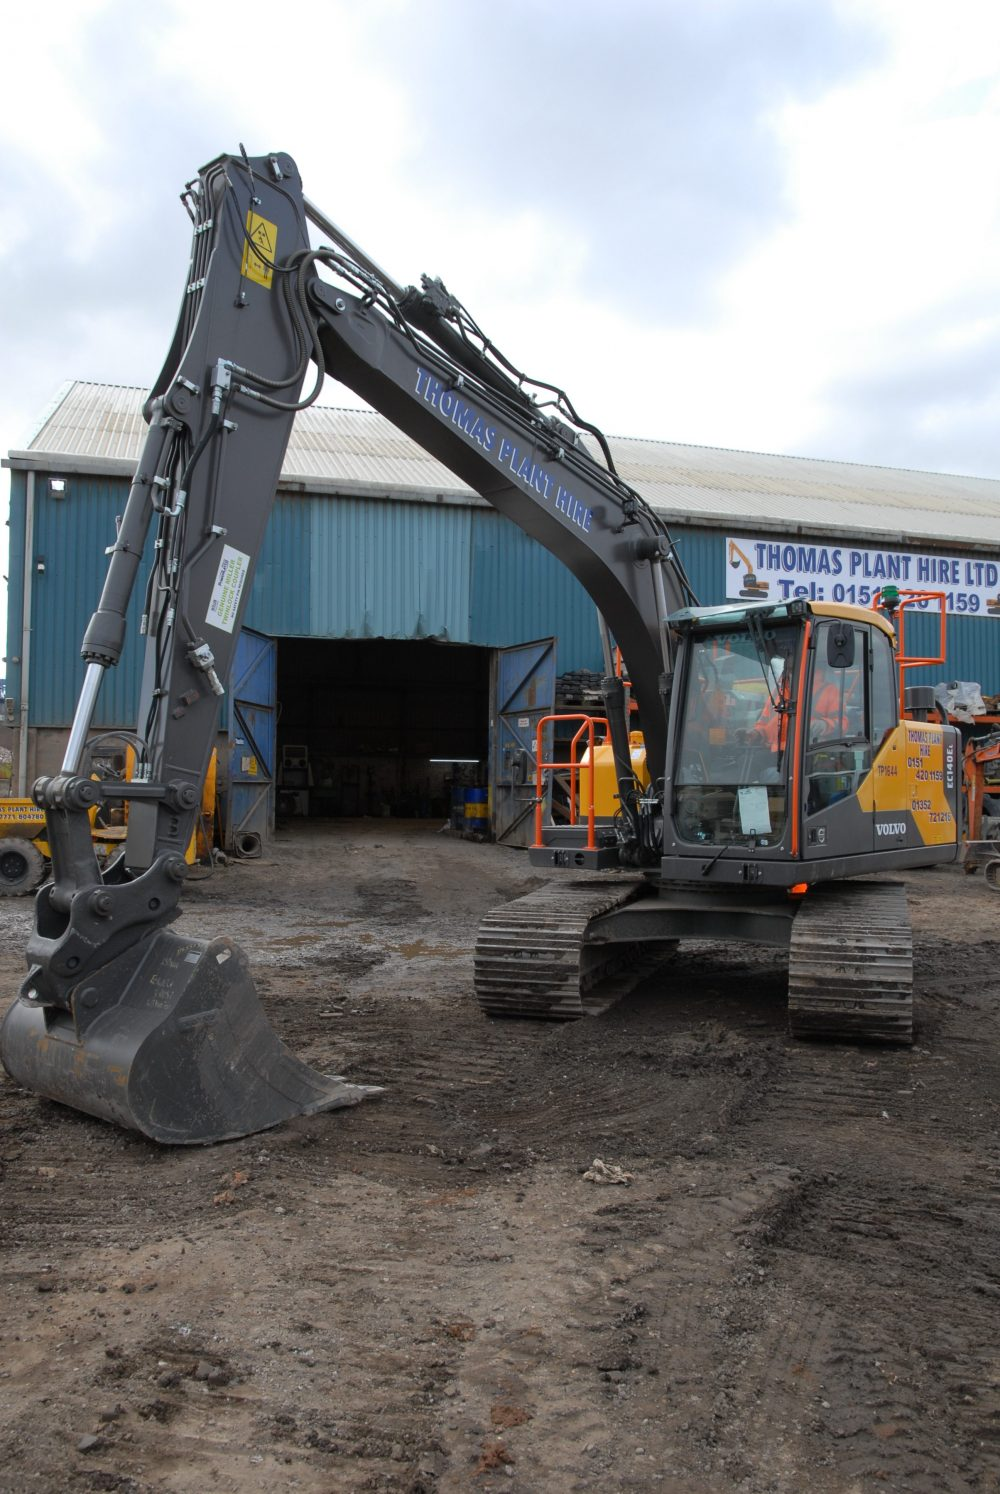 Ten shiny new 14 tonne Volvo Excavators for Thomas Plant in Wales